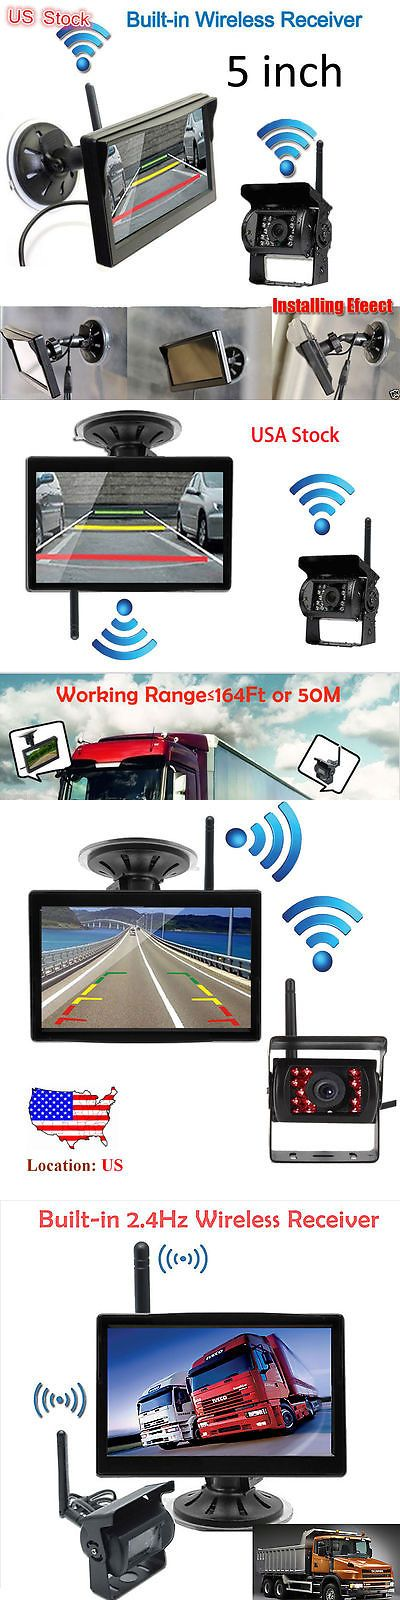 Rear View Monitors Cams and Kits: Wireless 5Car Rear View Monitor + Backup Camera + Antenna For Bus Truck Trailer -> BUY IT NOW ONLY: $58.99 on eBay!